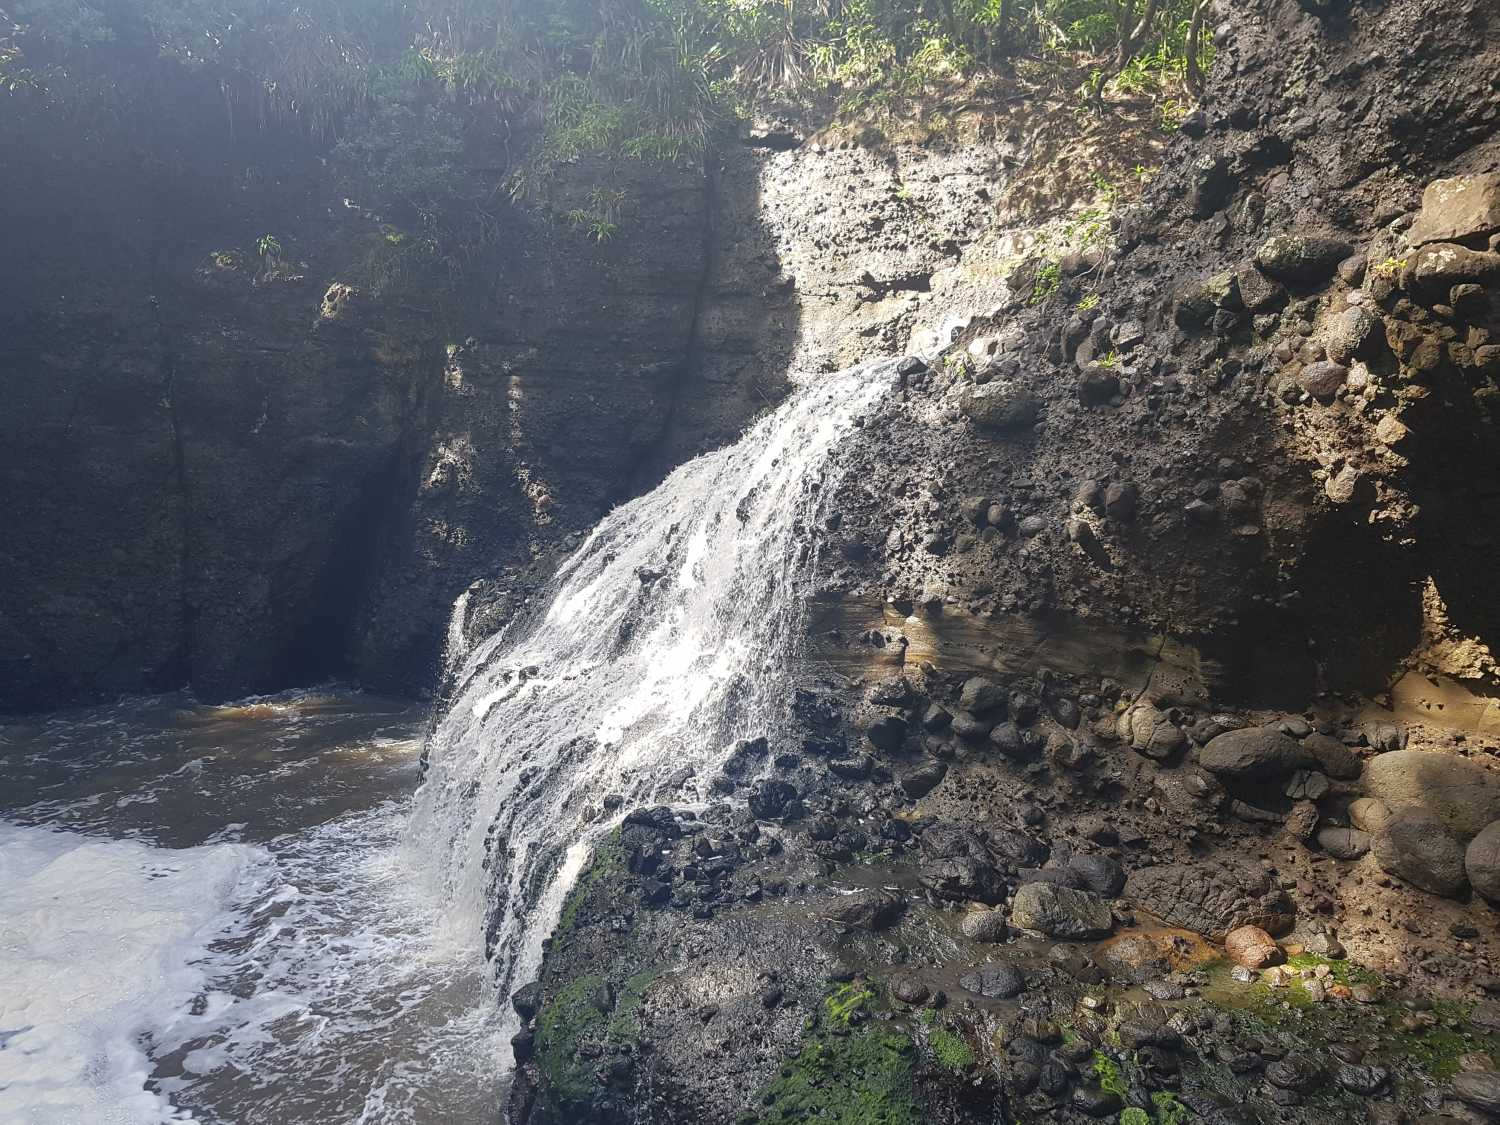 The waterfall at Piha's blowhole after heavy rains